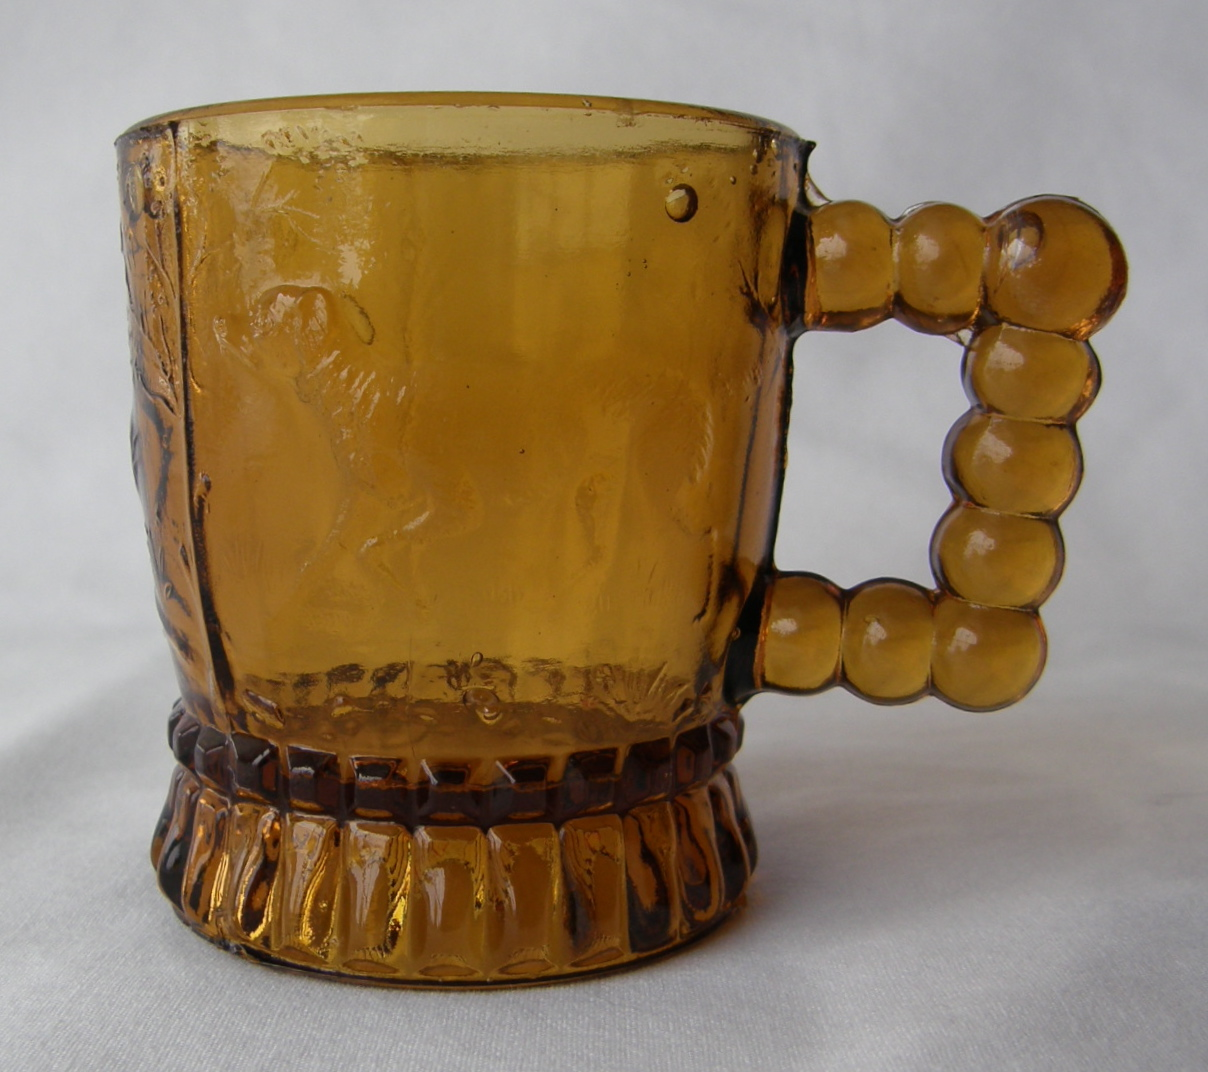 """Pointing Dog (Size: 2-3/8"""" dia. x 2-5/8"""" ht.; Color: Amber) To the right of the handle, sculpting shows a hunting dog looking straight ahead and pointing toward the bird."""